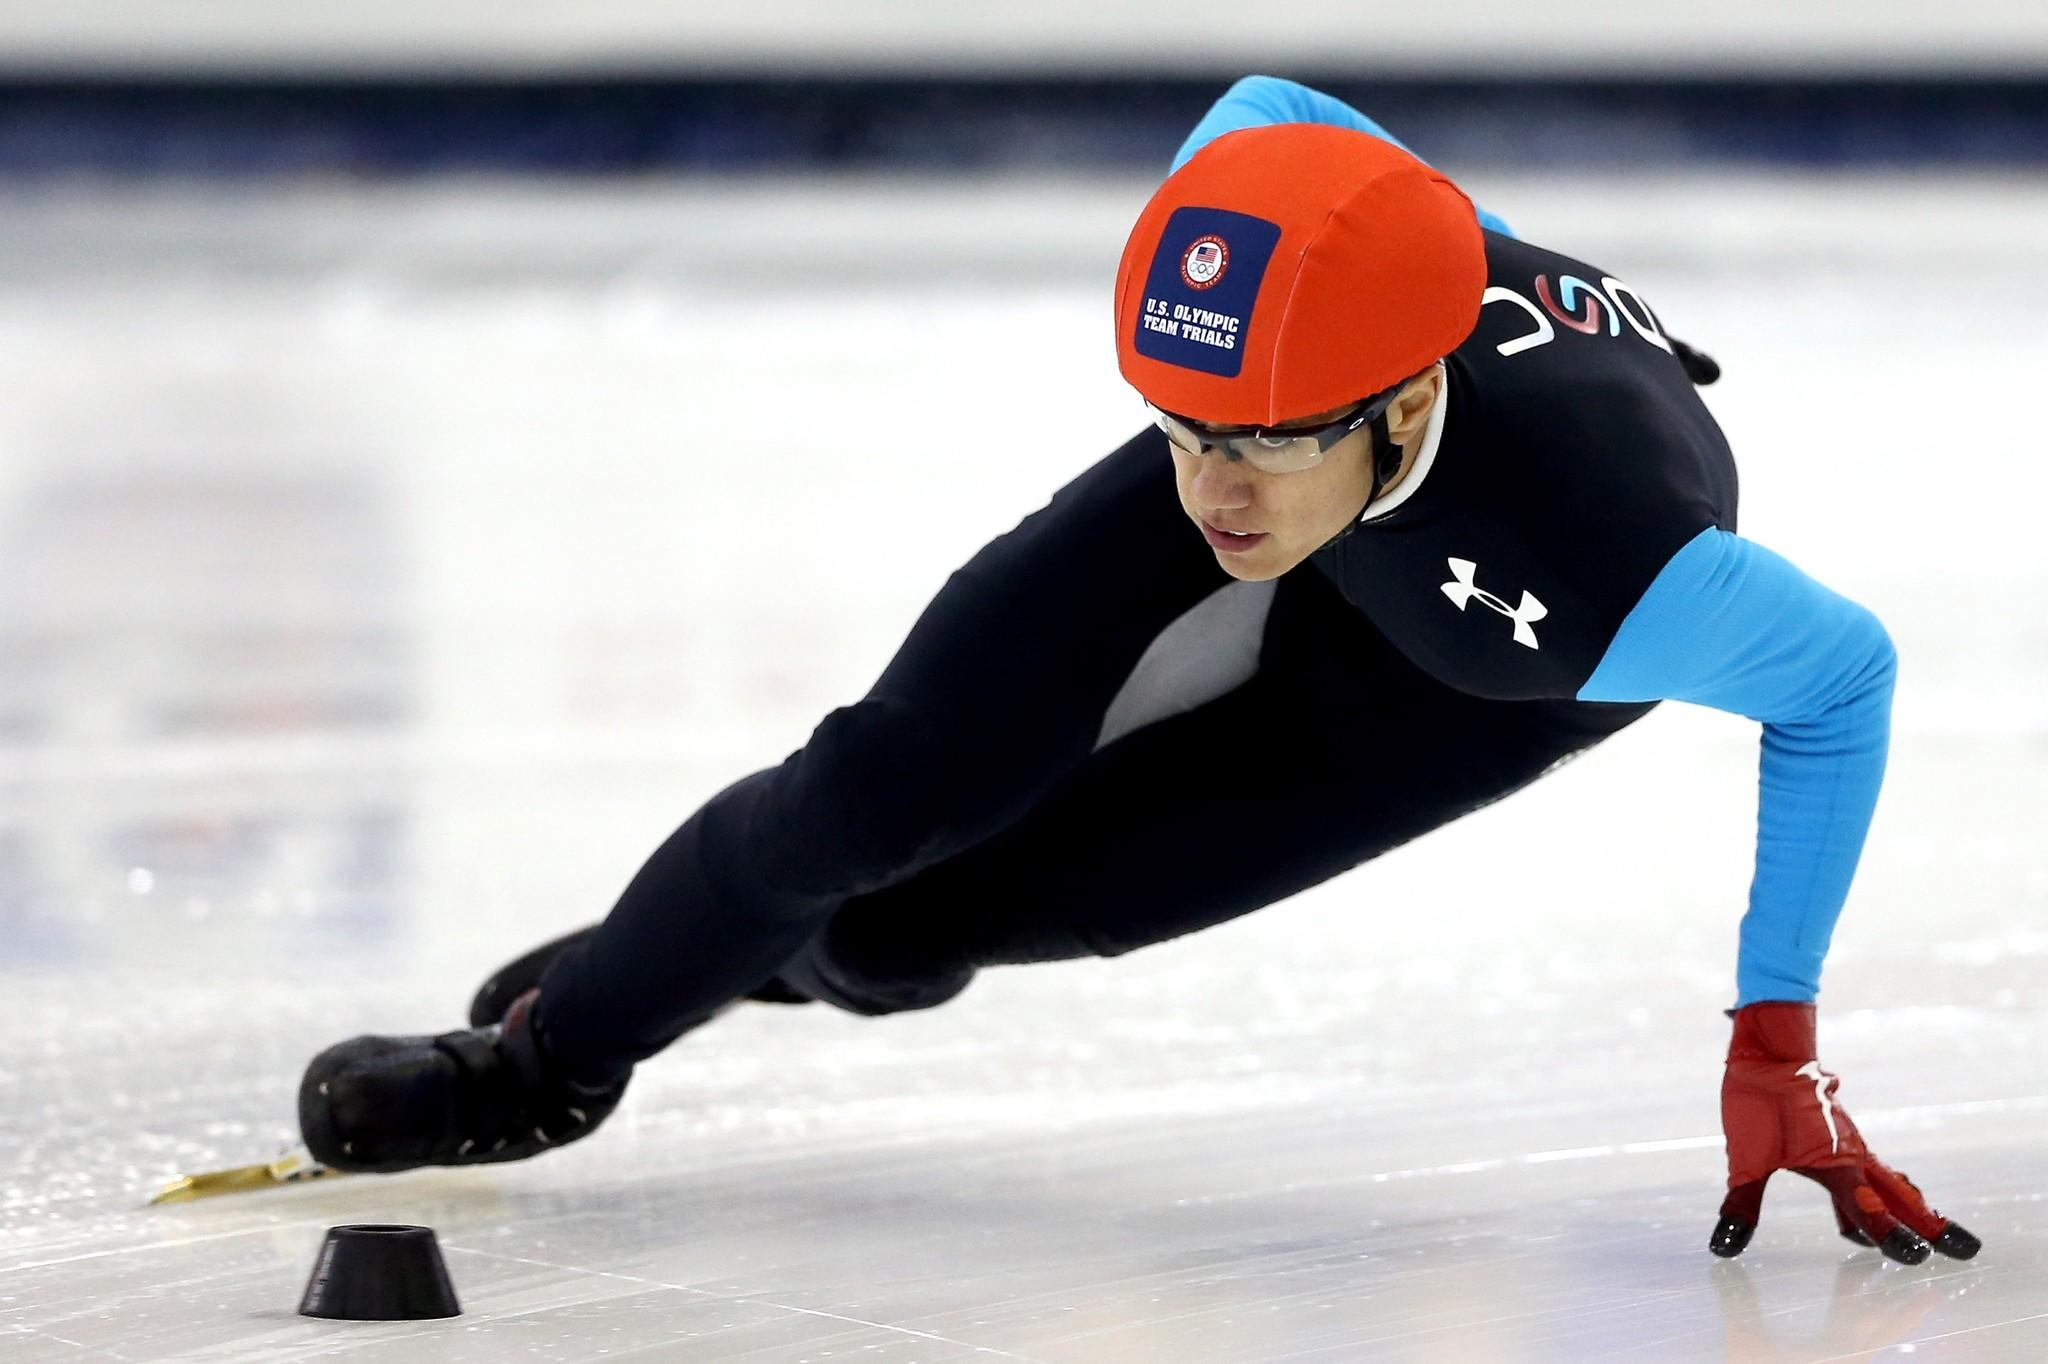 J.R. Celski skates in the first 1,000 meter semifinal during the U.S. Olympic Short Track Trials at the Utah Olympic Oval.